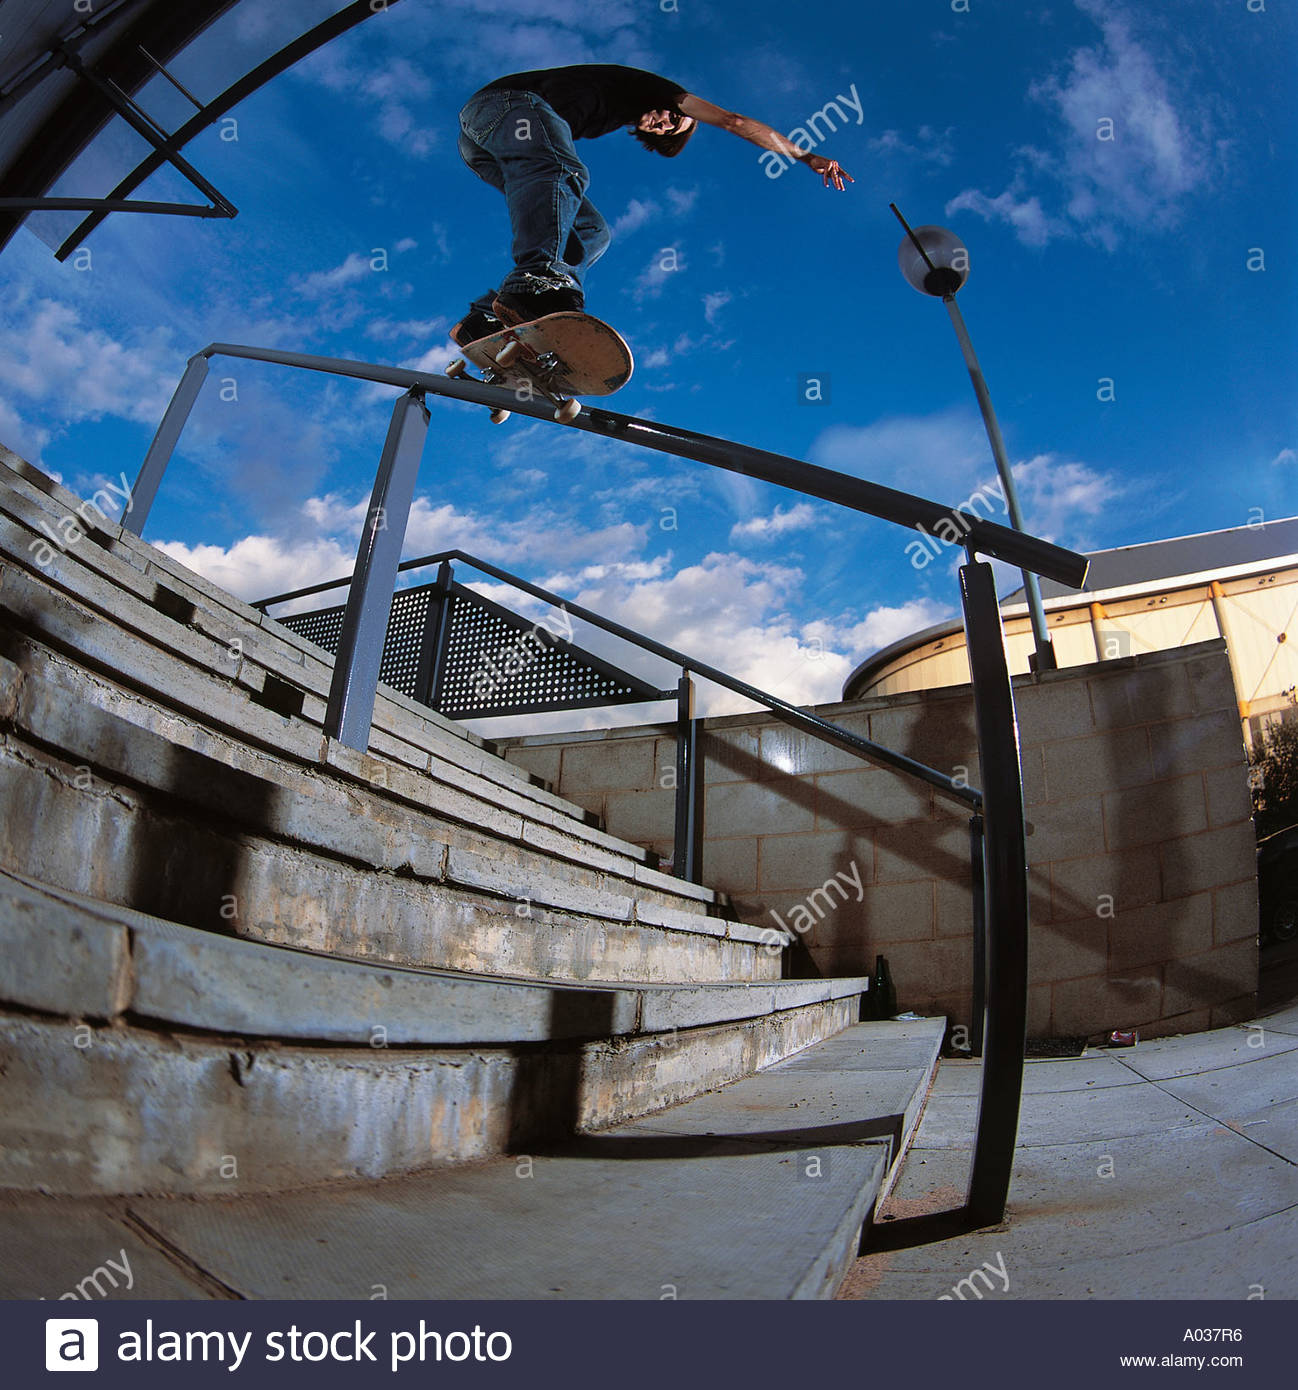 Skateboarder Performs Grind on Handrail,  England - Stock Image